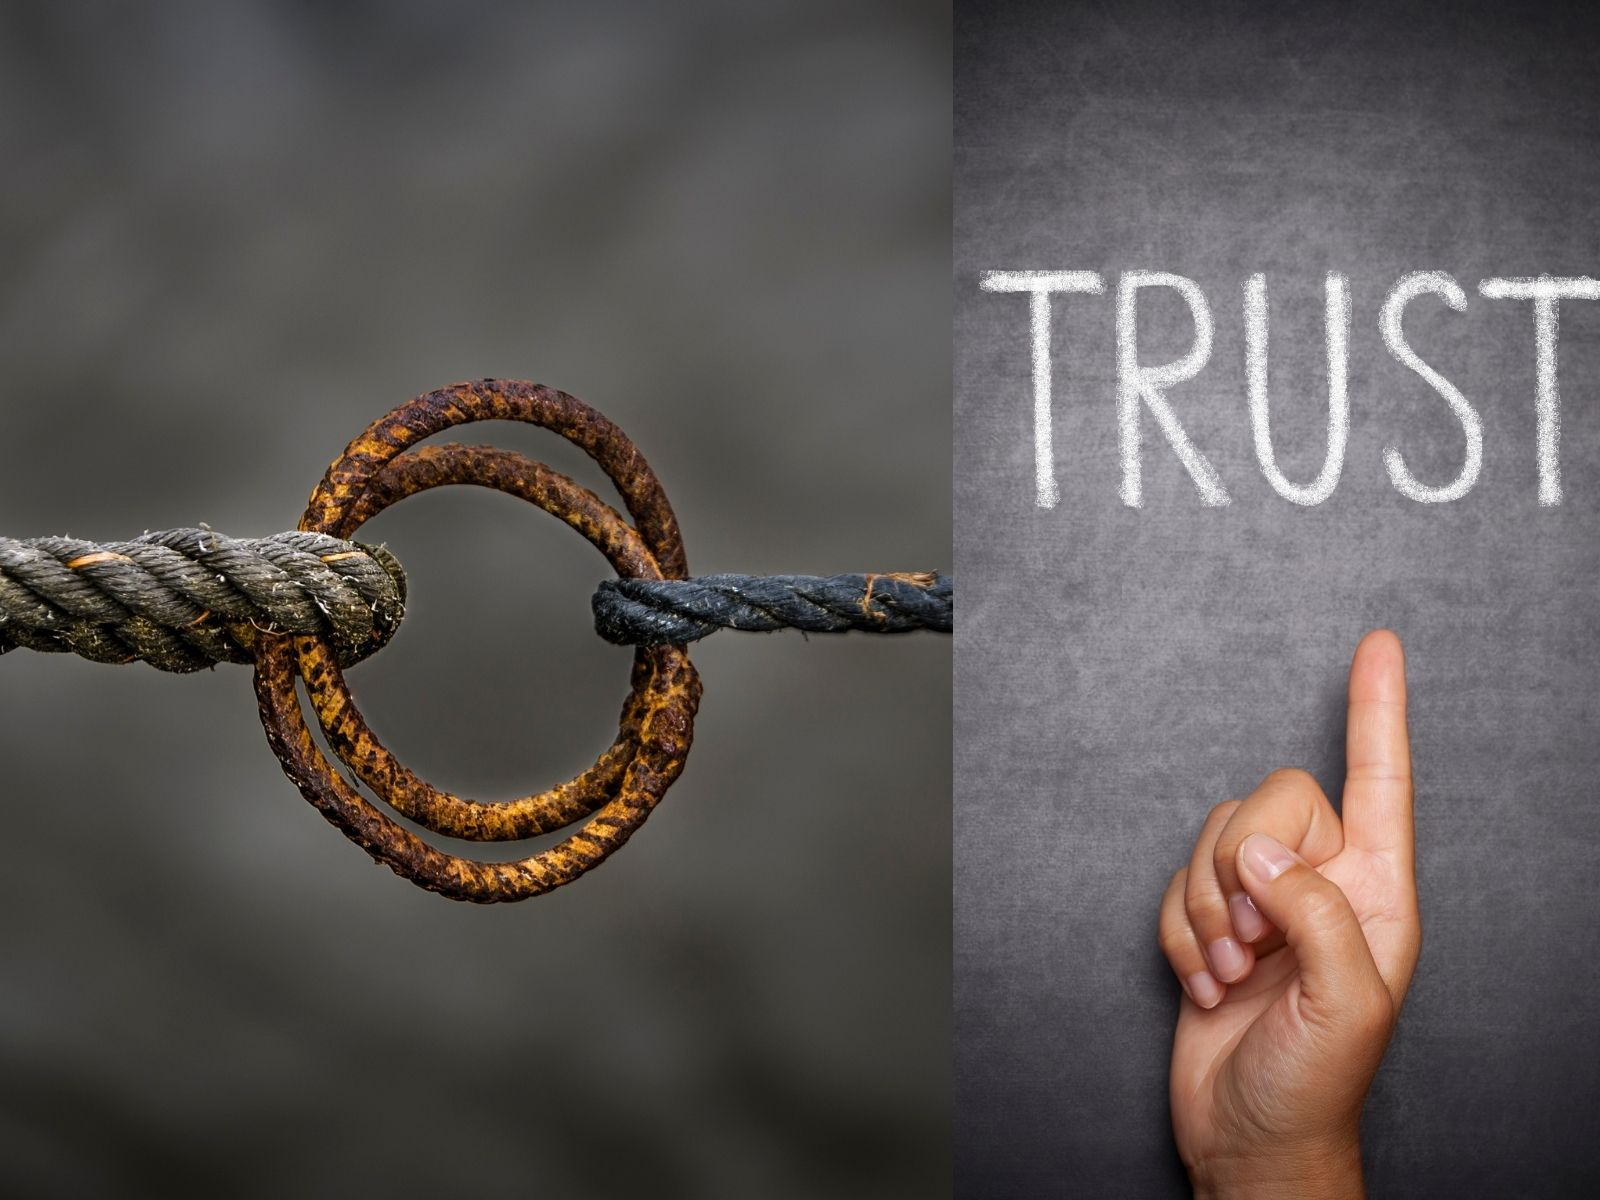 Trust is a solid word